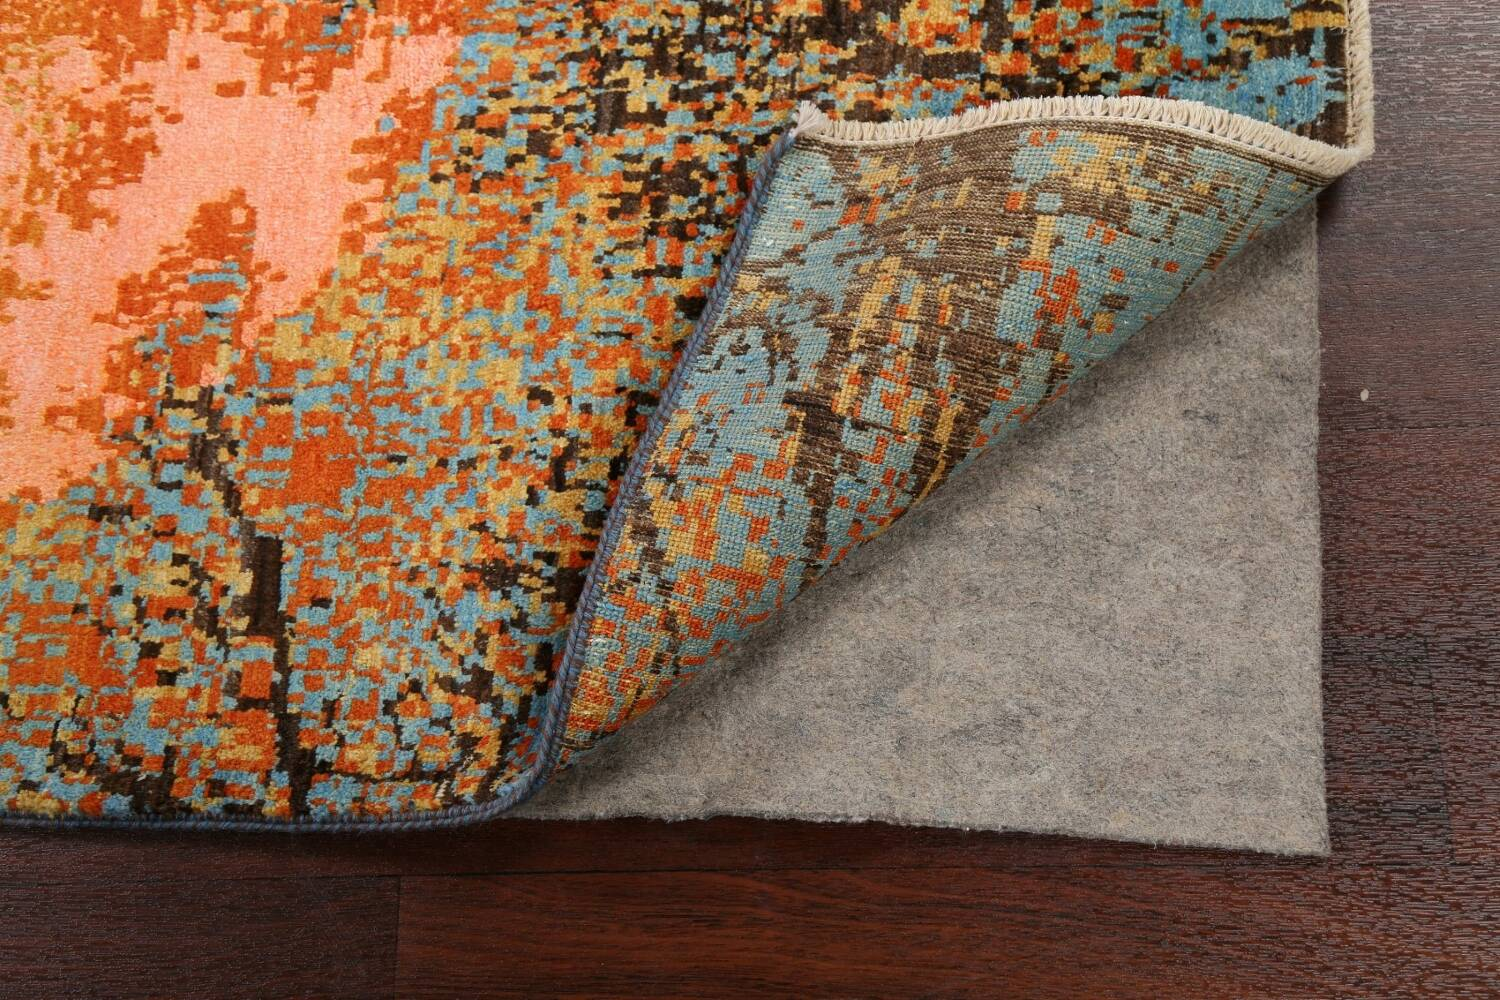 Vegetable Dye Contemporary Abstract Oriental Area Rug 4x6 image 7